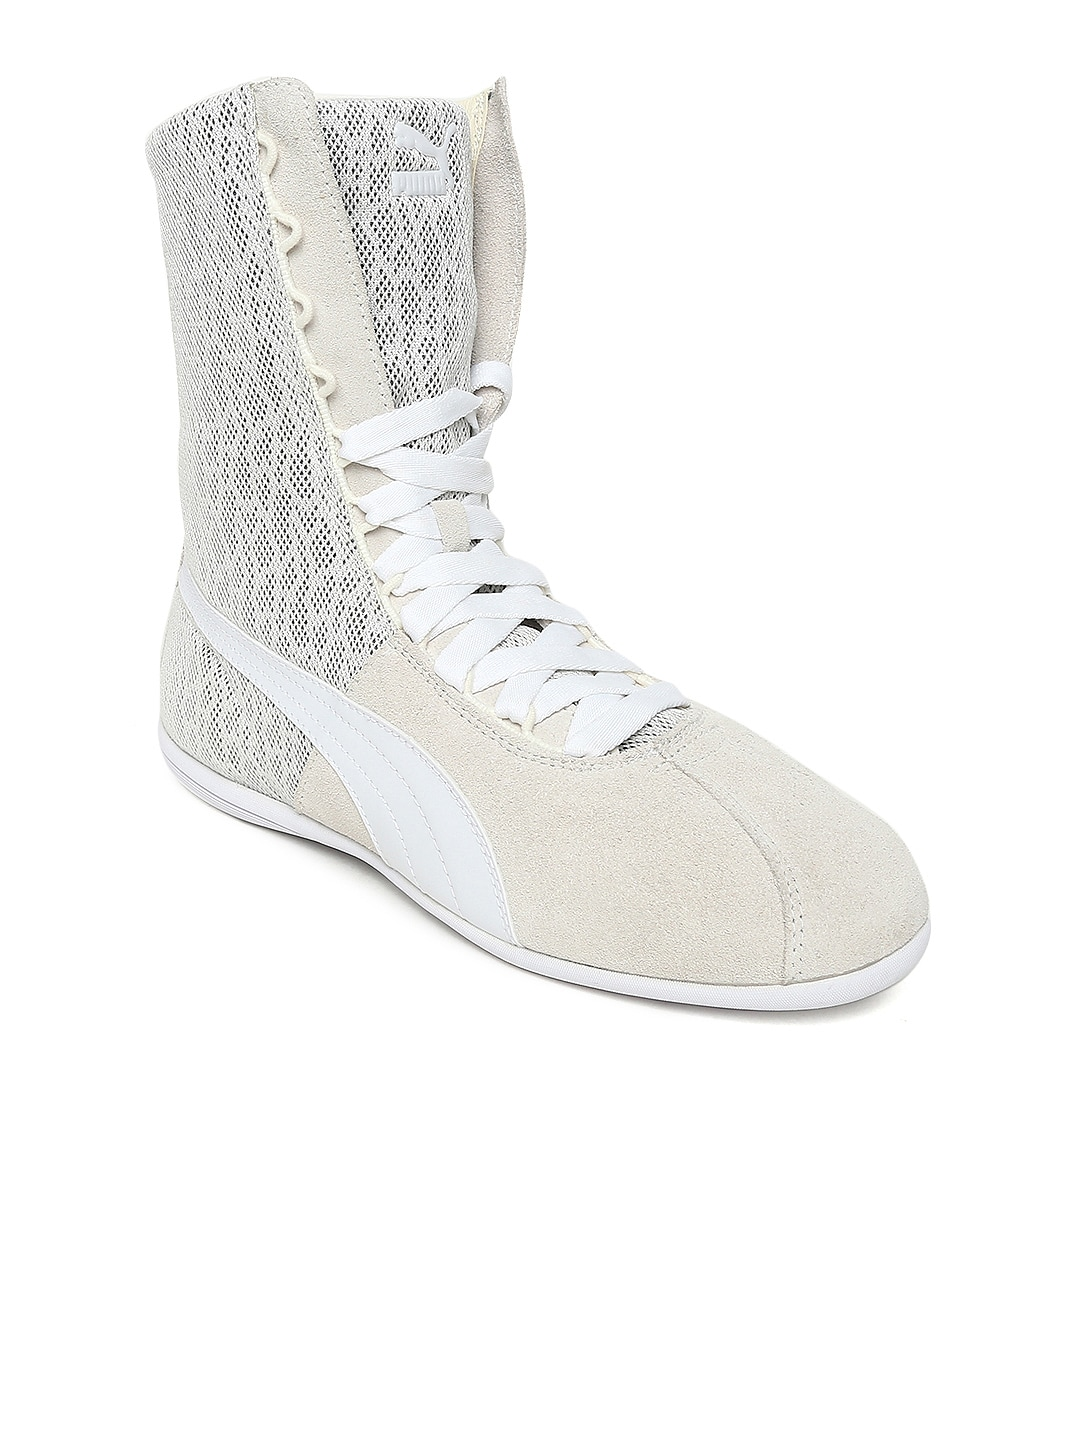 d8e2179f1c41 White High Tops Shoes Casual - Buy White High Tops Shoes Casual online in  India